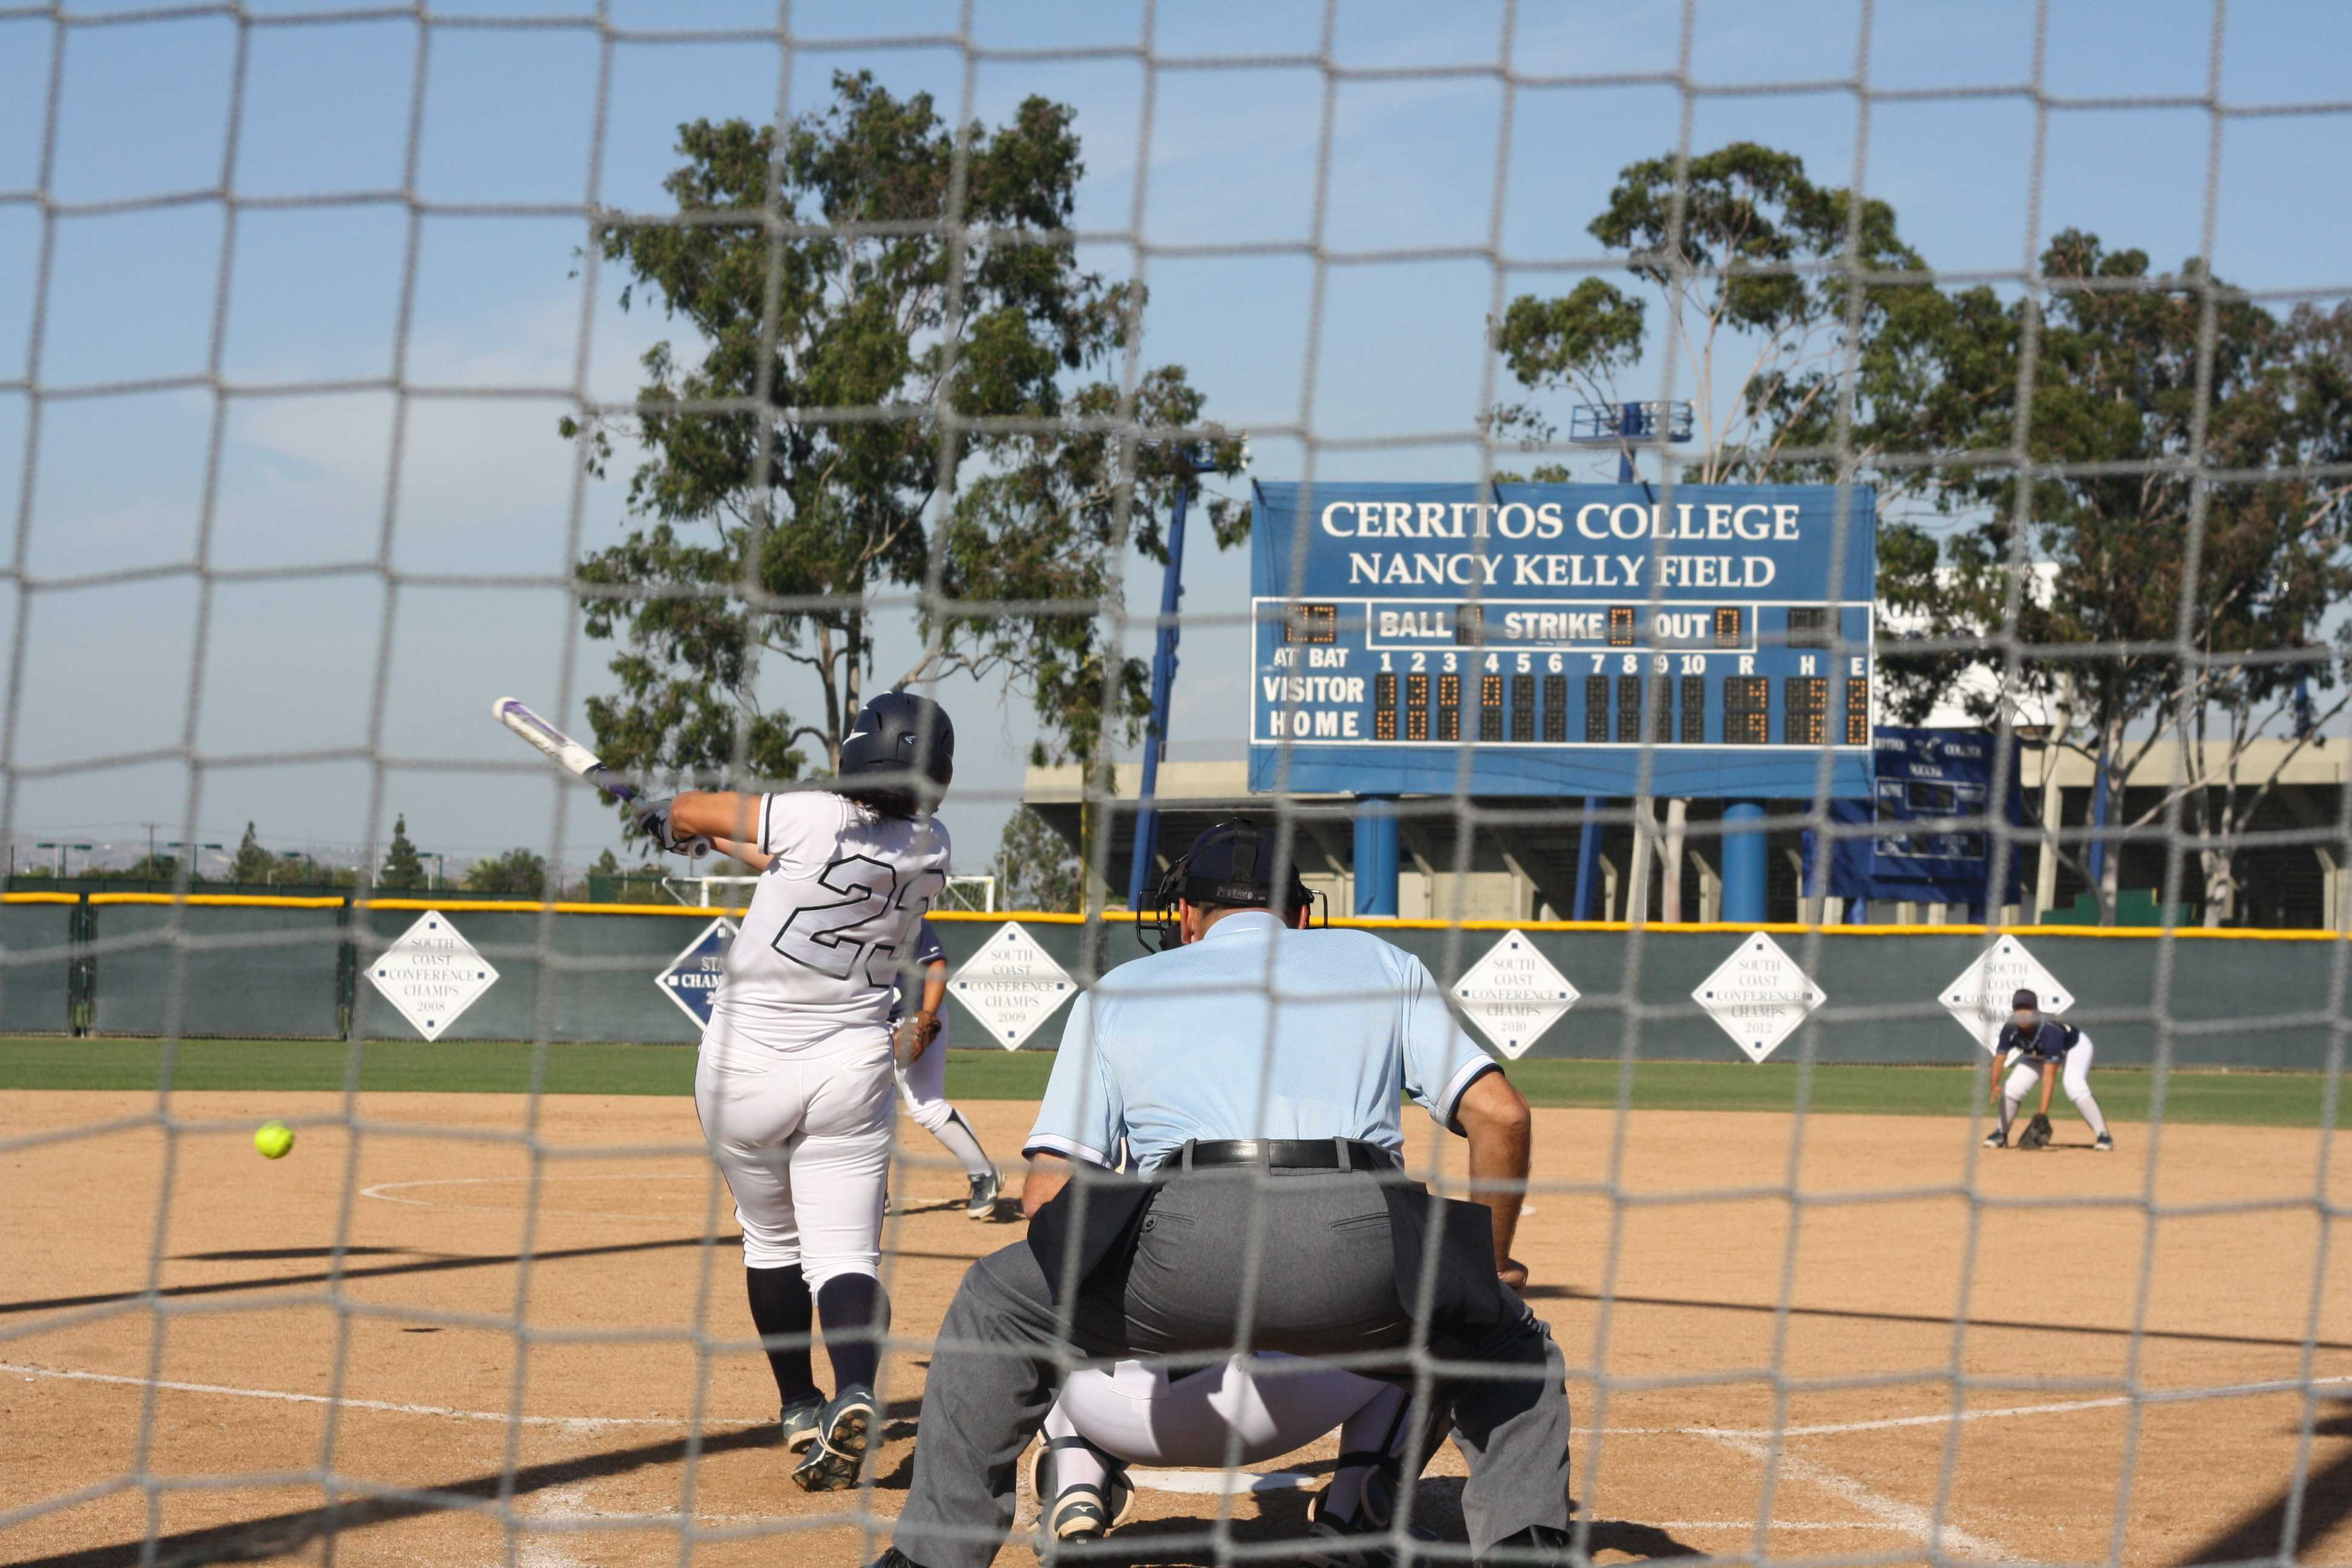 Catcher Krystal Purkey singles to left in the fourth inning. The Falcons improved their conference record to 9-3 with a 15-4 route of the LA Harbor Seahawks.